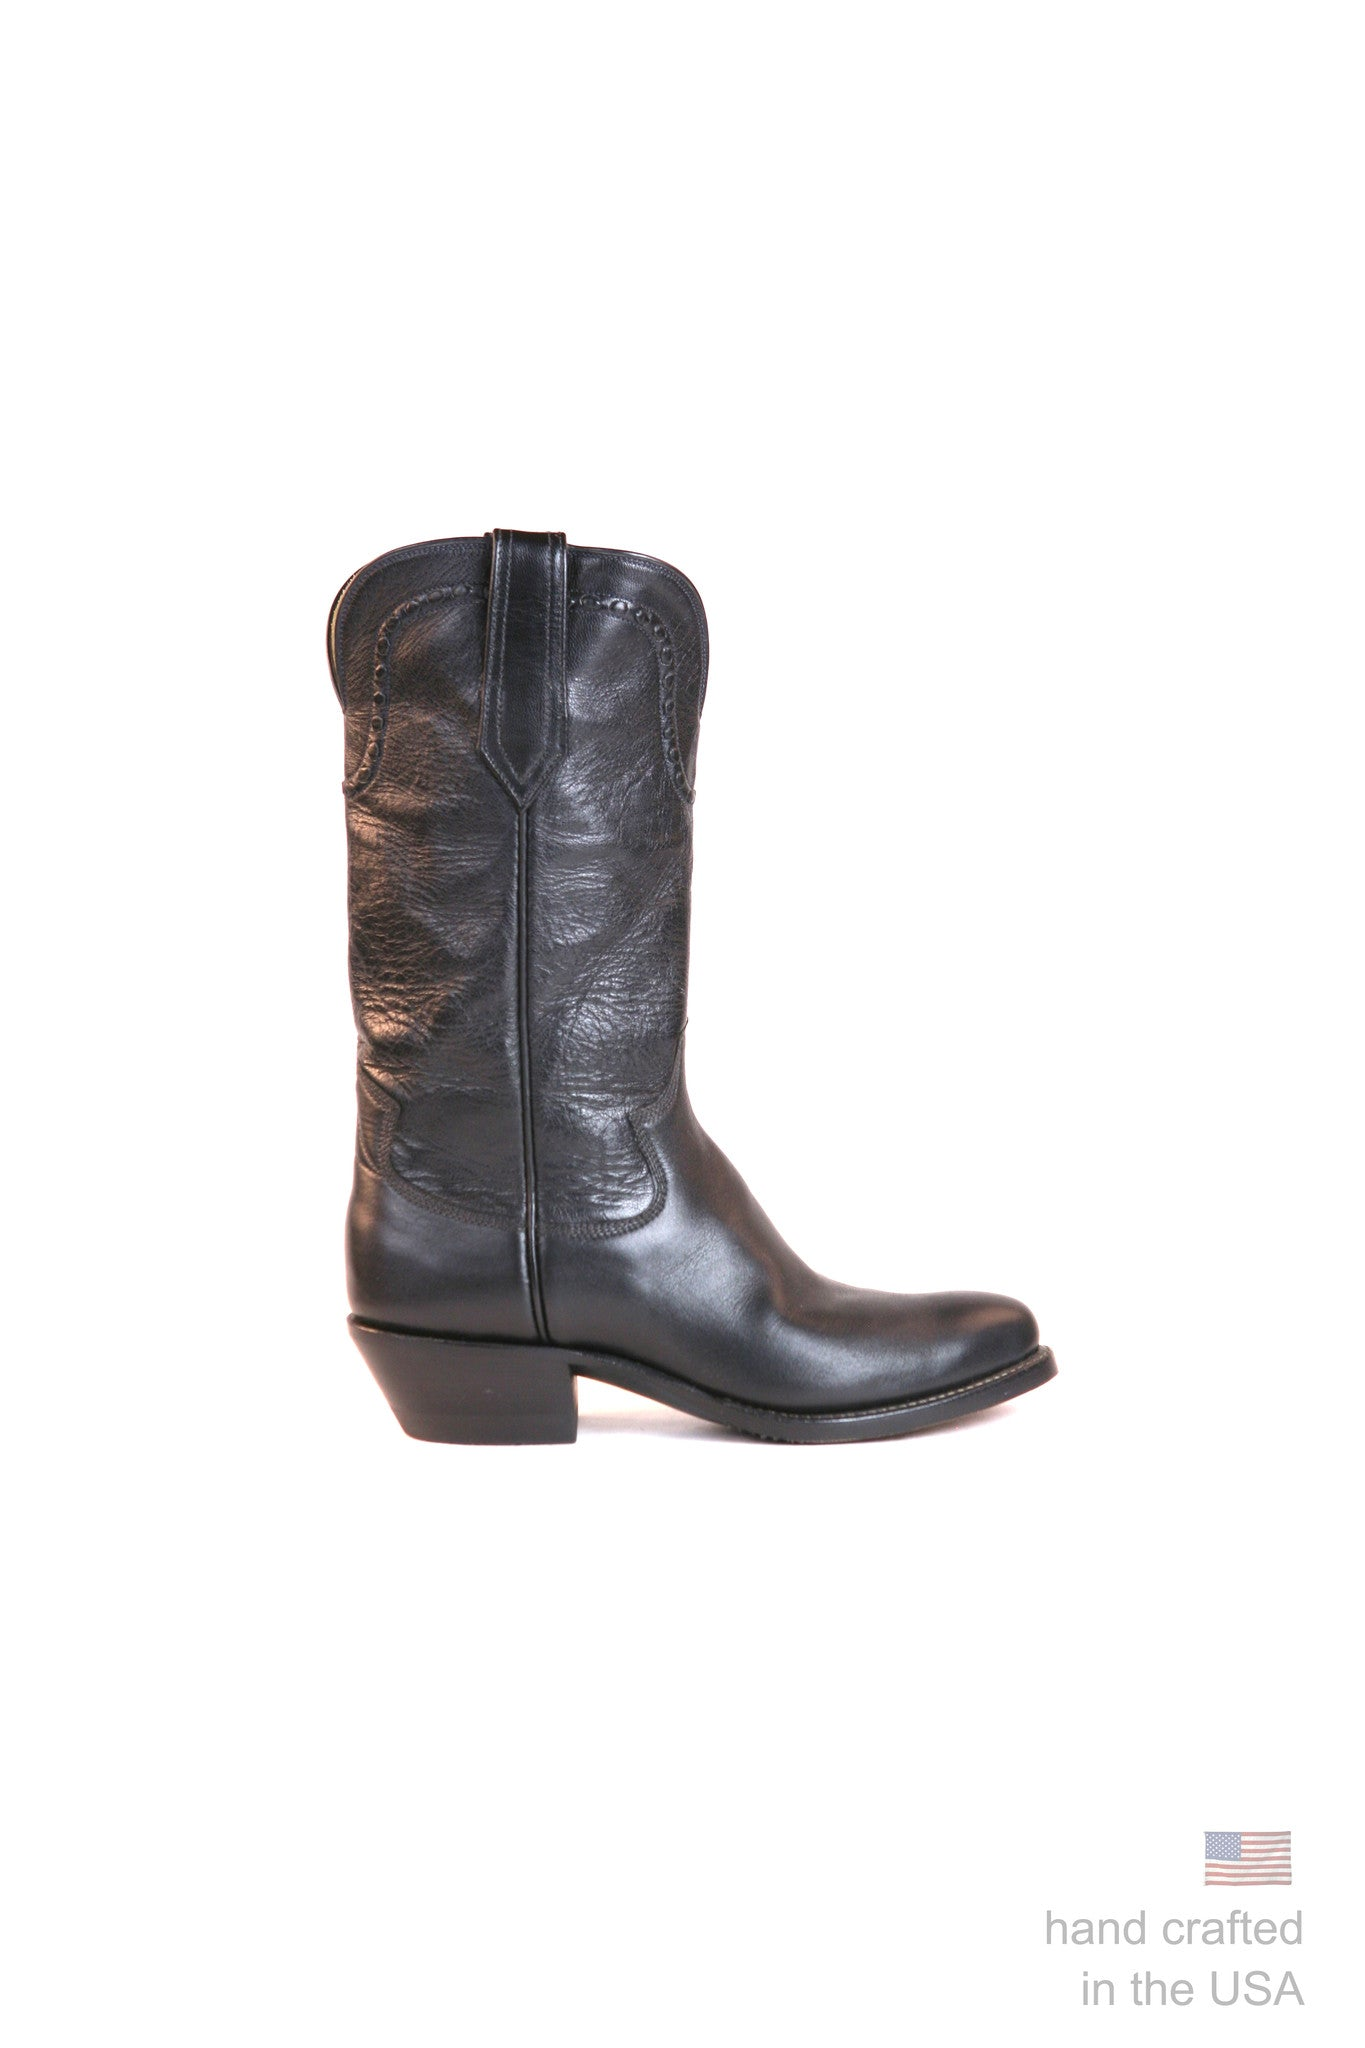 Singles: Boot 0053: Size 6B